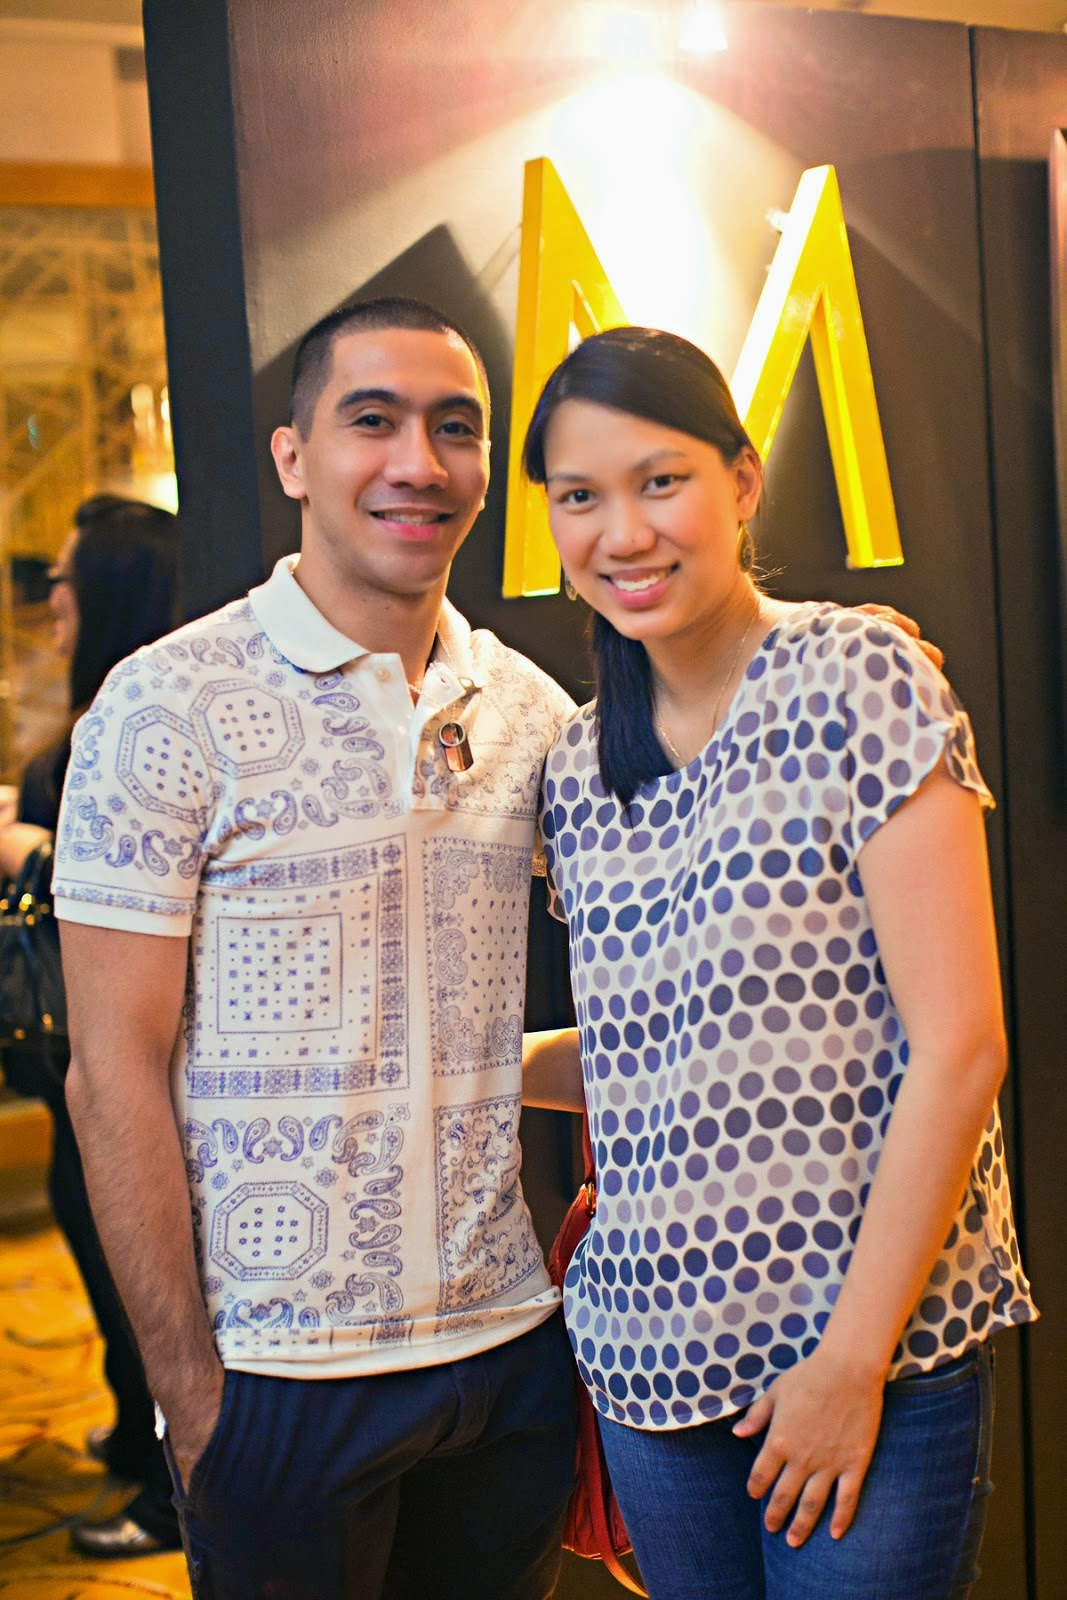 gabe norwood wedding - photo #42